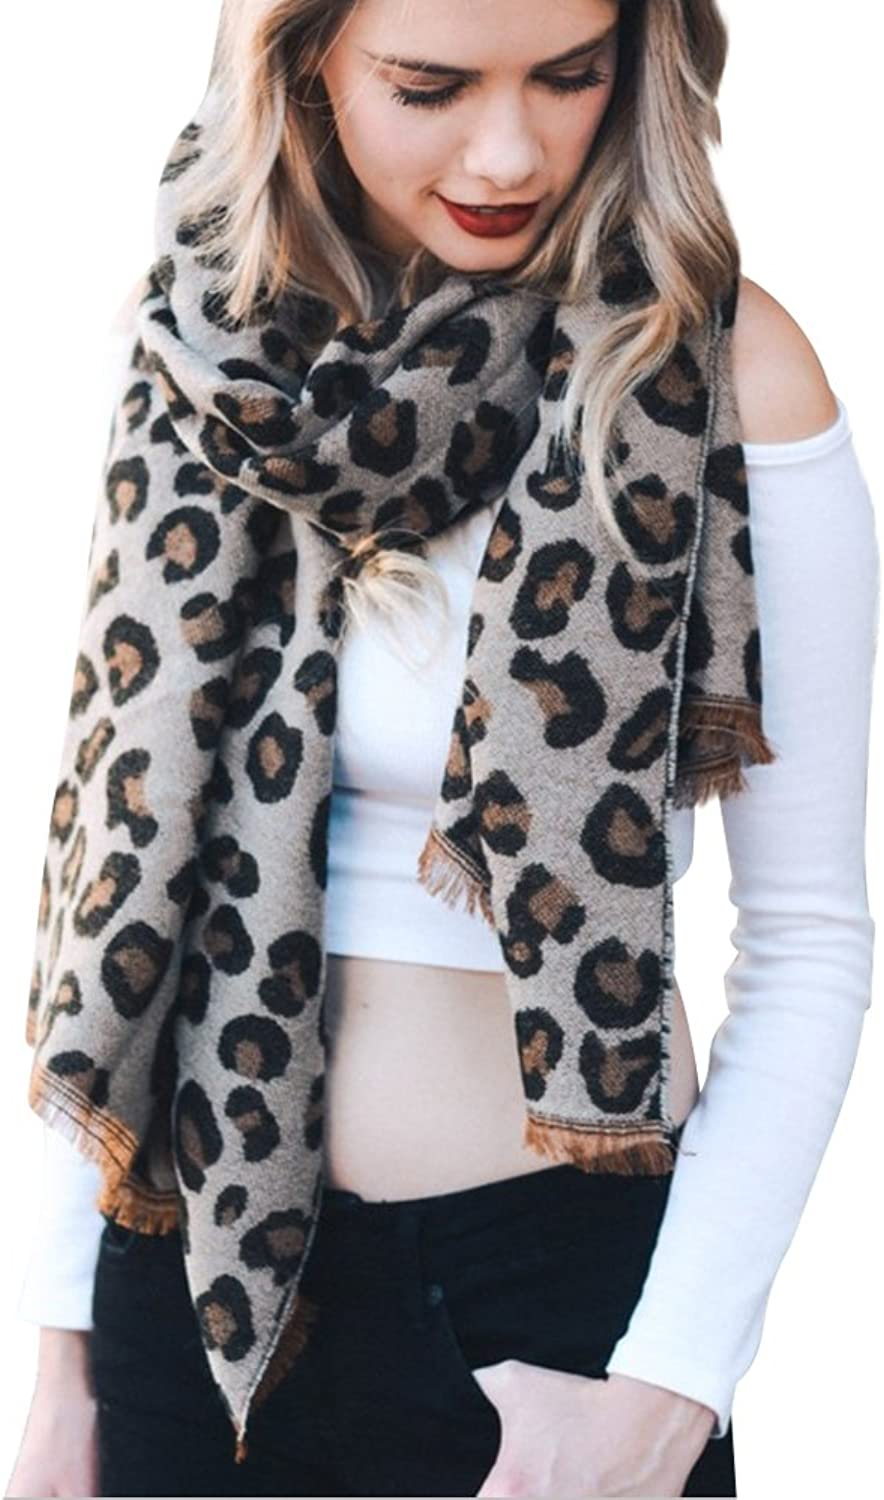 Boho Now Super Soft Reversible Leopard Print Blanket Scarf